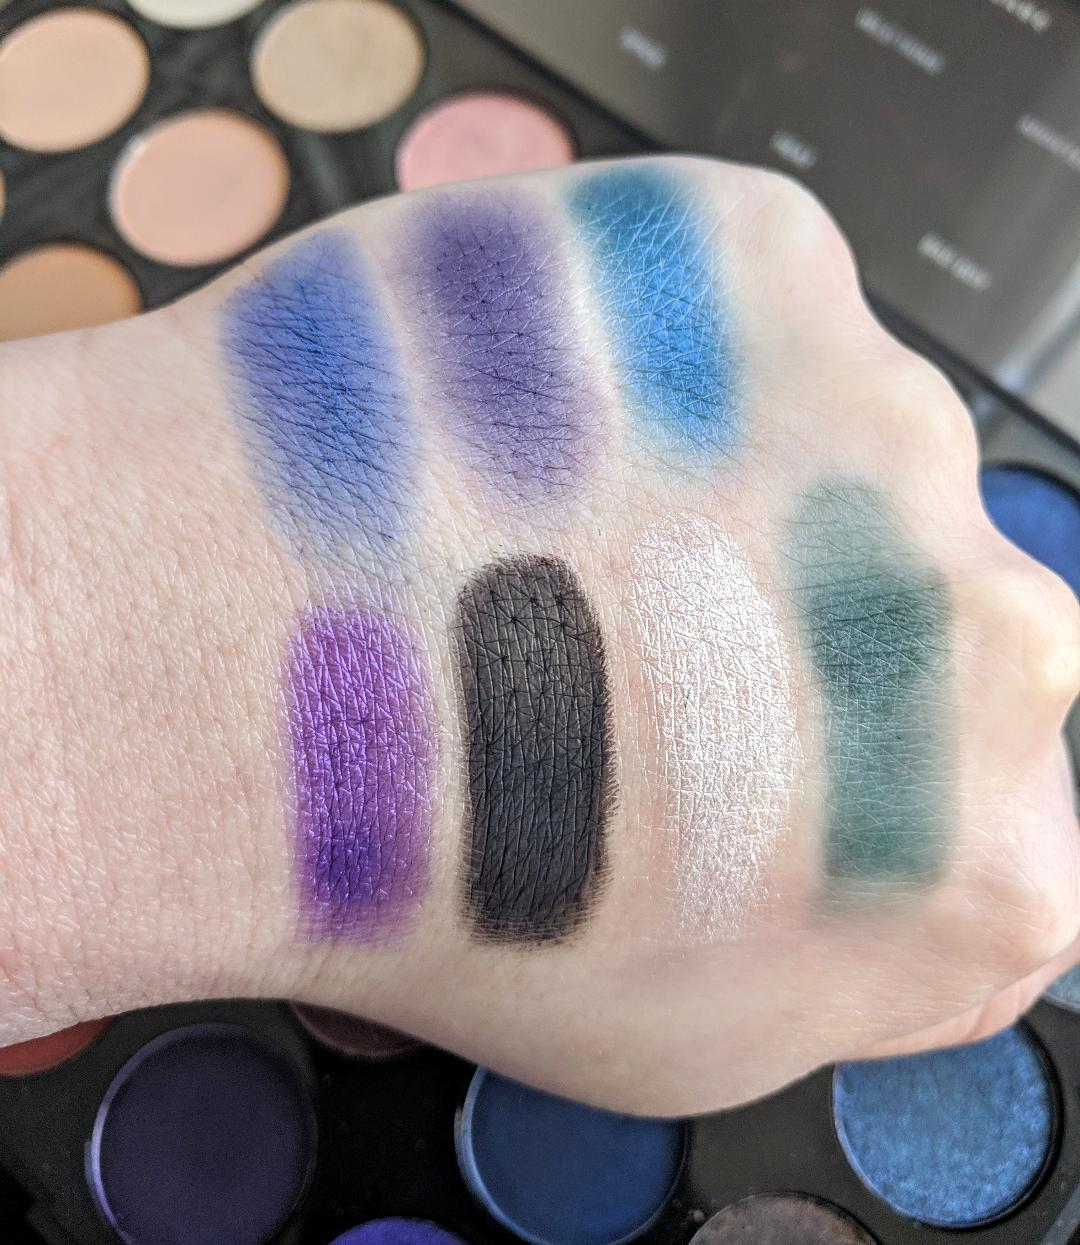 Morphe 35V Stunning Vibes Artistry Eyeshadow Palette Review – The